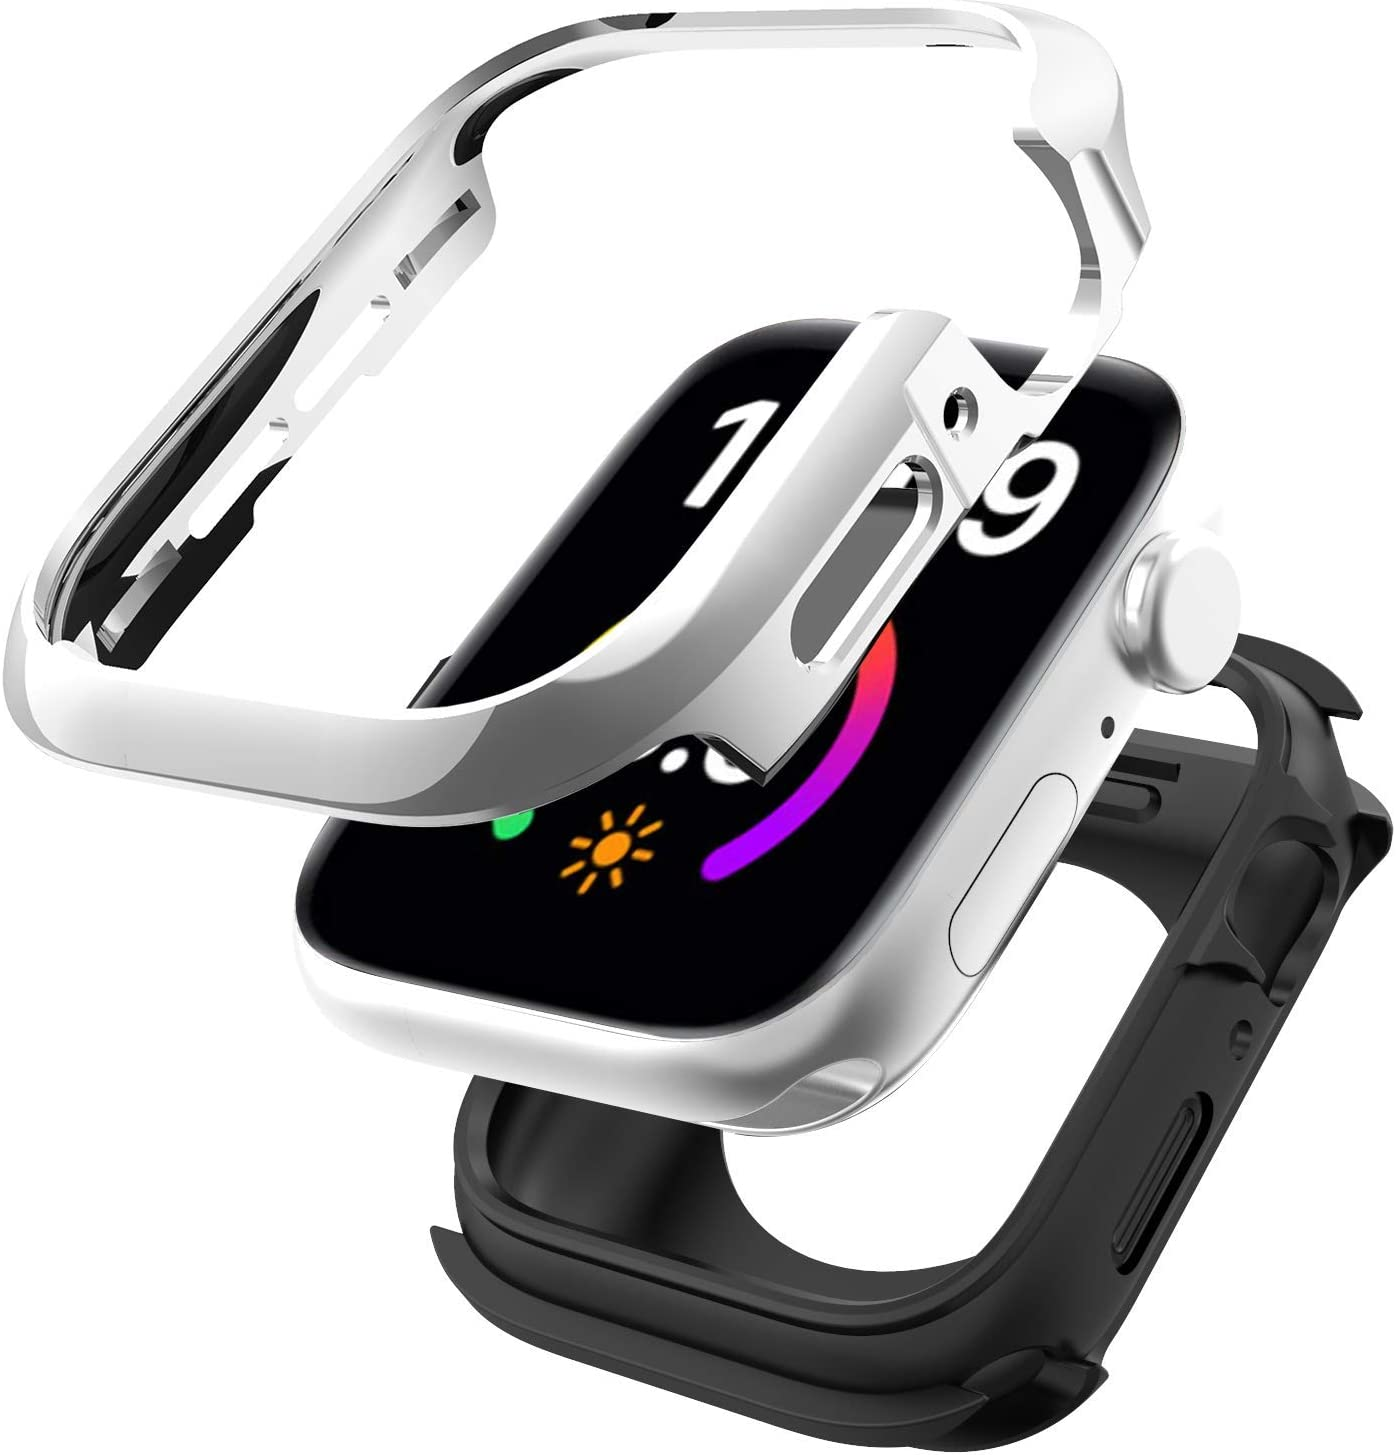 SwitchEasy Odyssey Case Compatible with Apple Watch Series 6/SE/5/4 44mm, Metal + TPU 2-in-1 Bumper case, Anti-Scratch, Shockproof Protection - Flash Silver